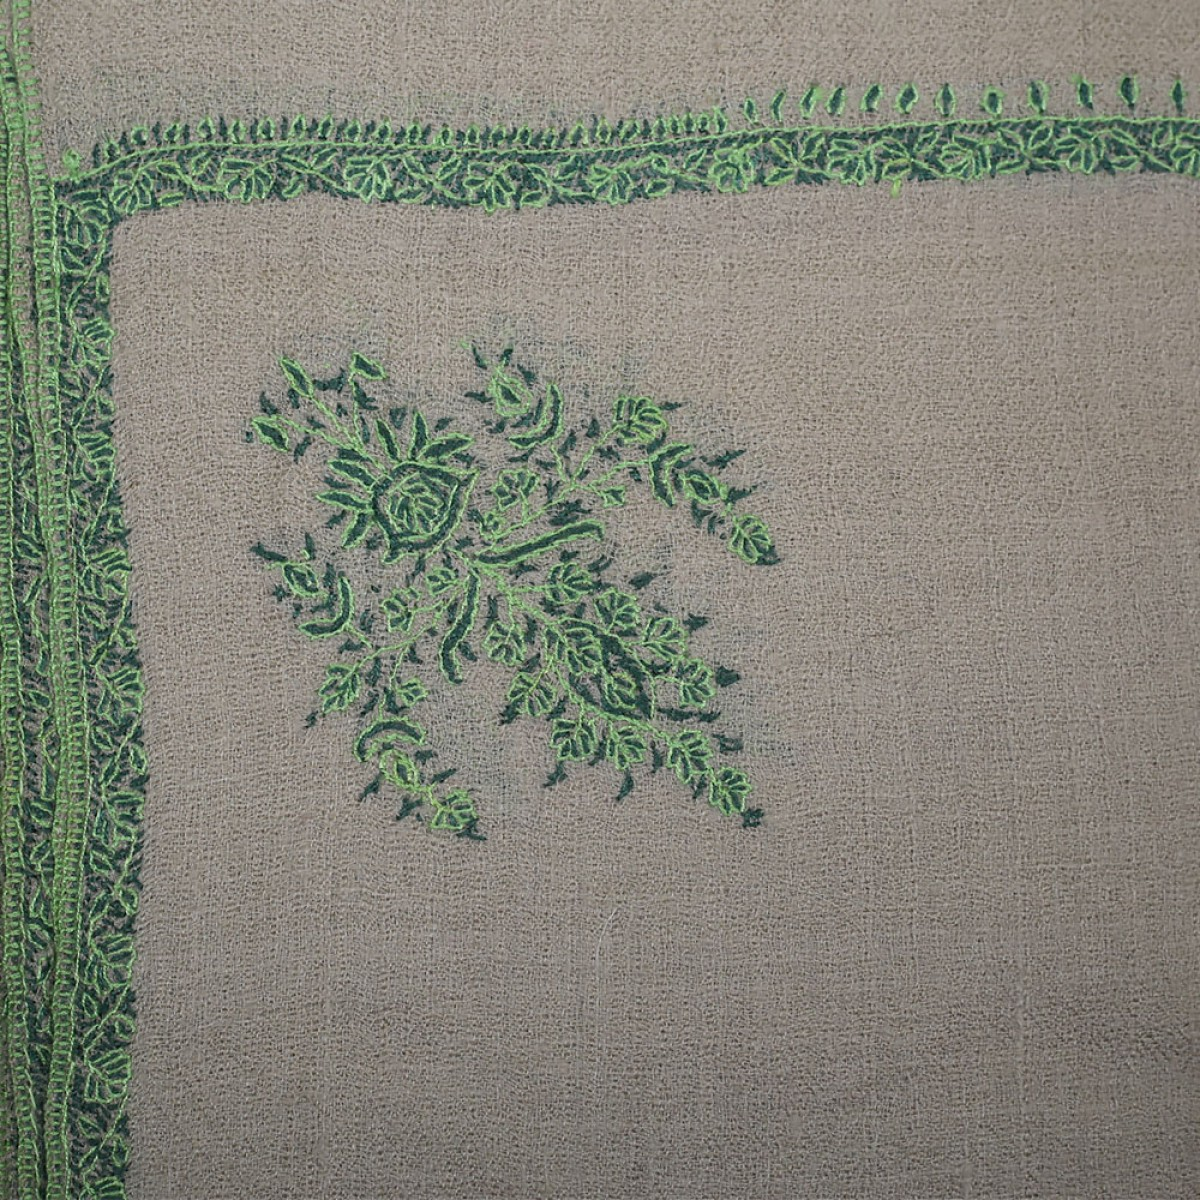 Embroidered Handloom Pashmina Stole - Natural Green